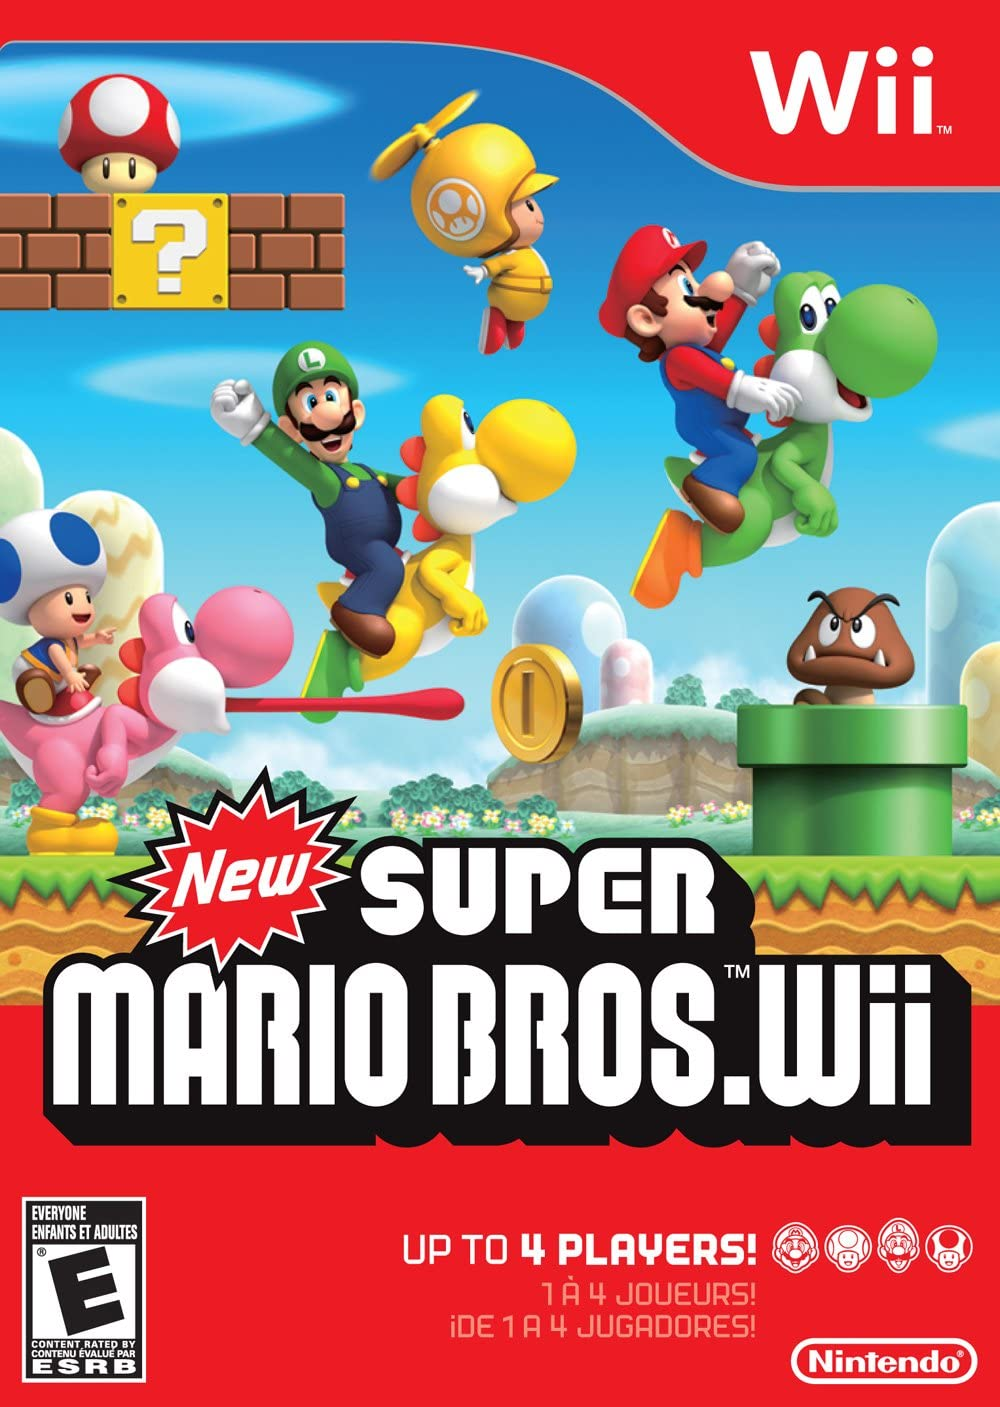 Amazon.com: New Super Mario Bros. Wii: Nintendo Wii: Nintendo of ...